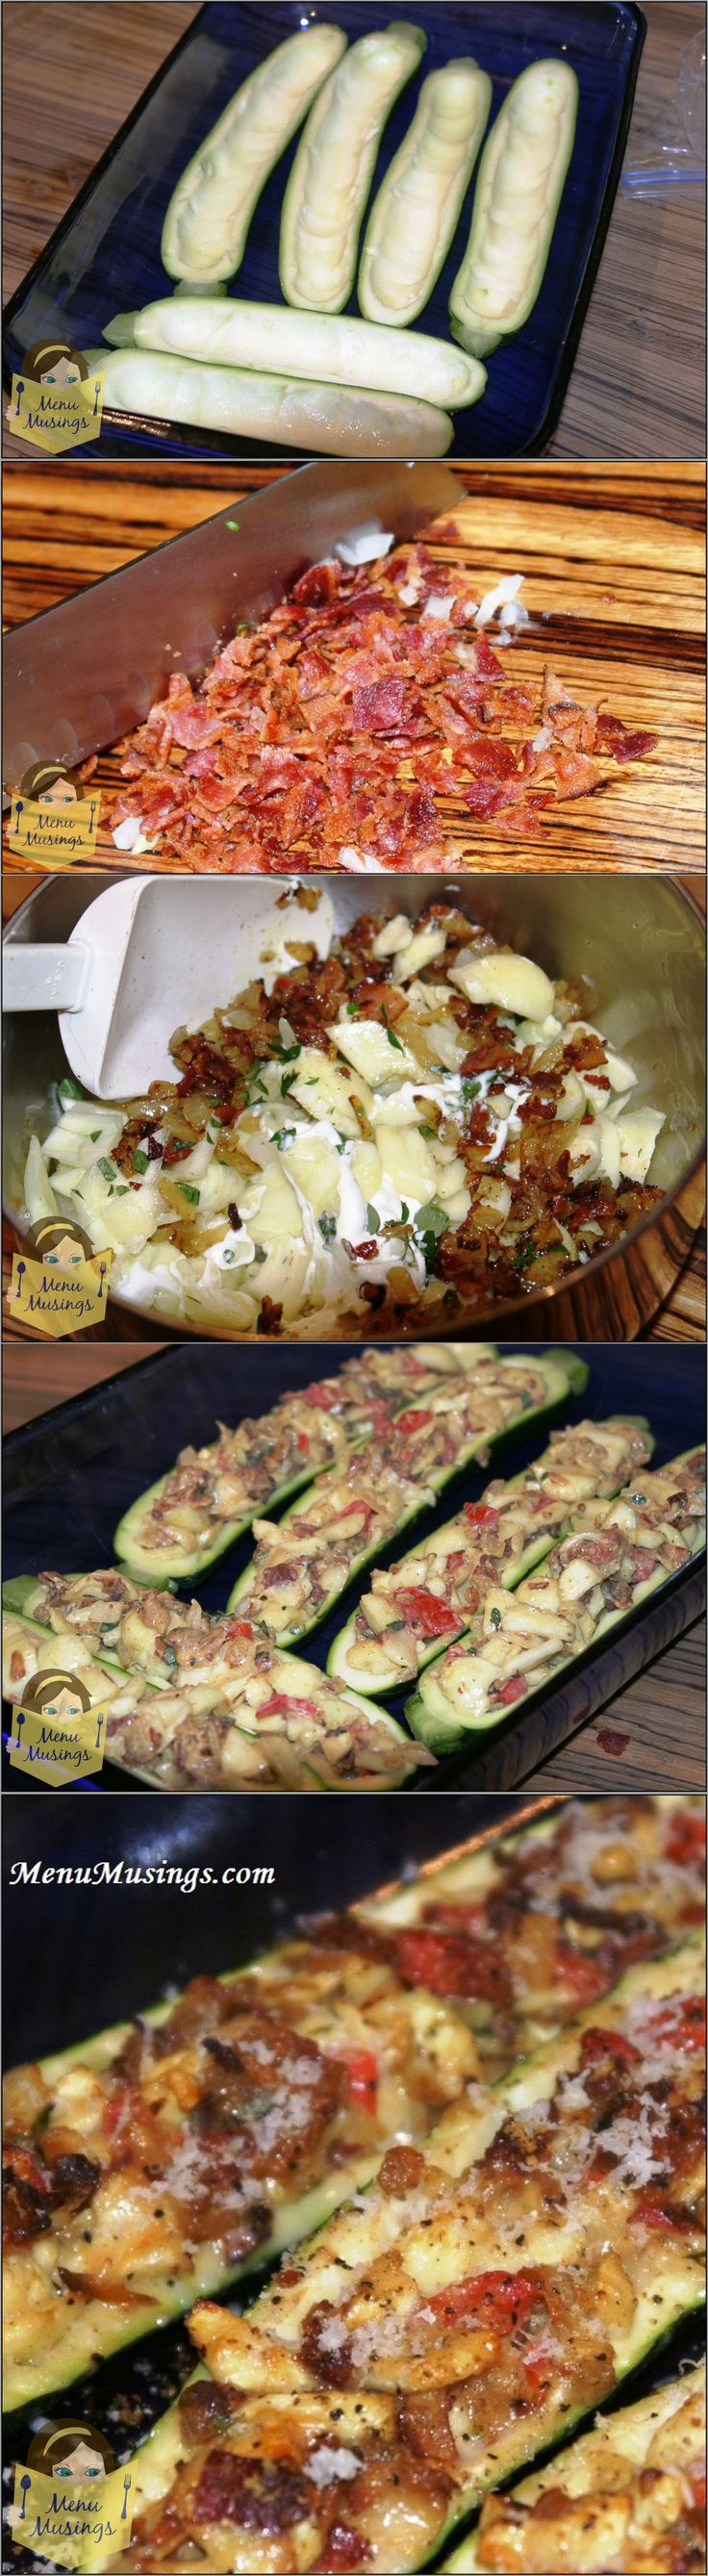 Stuffed Zucchini -  A definite favorite of my readers... These are SO easy and delicious.  You could totally make these up ahead of time, refrigerate, and throw them in the oven to bake before your meal.  Step-by-step photos and short video tutorial. <3